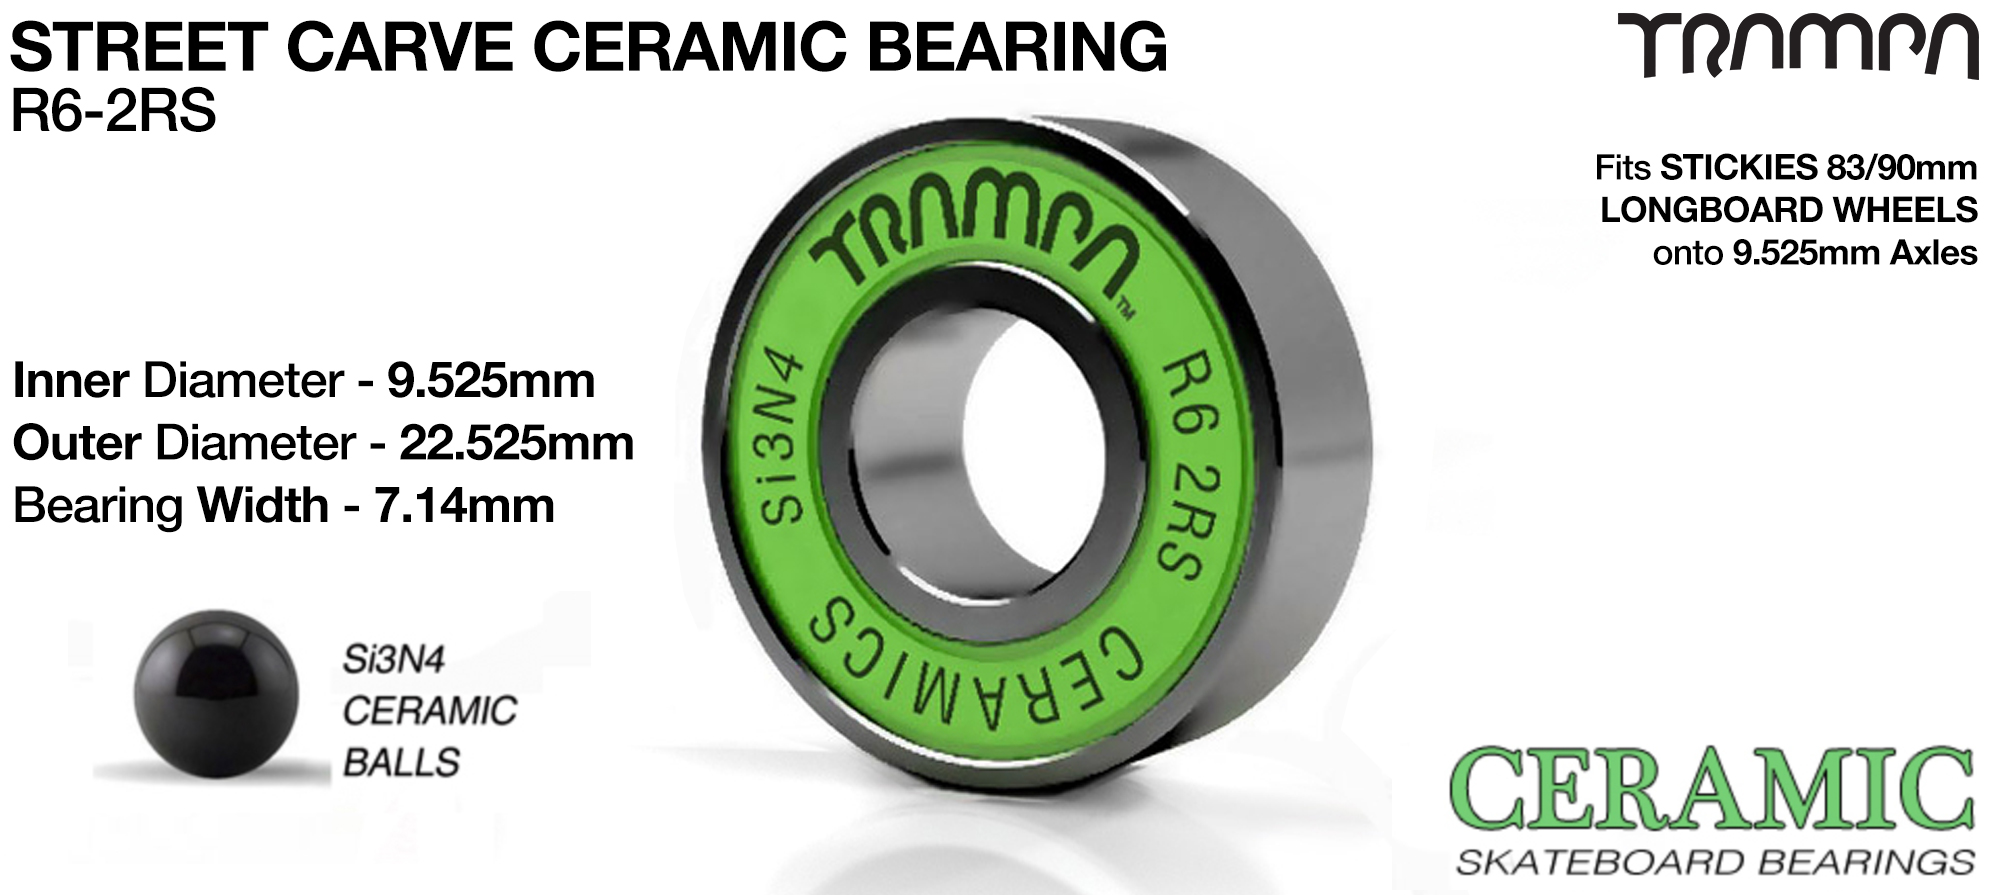 CERAMIC 9.525 x 22.225mm R6-2RS Bearings (+£4.50)